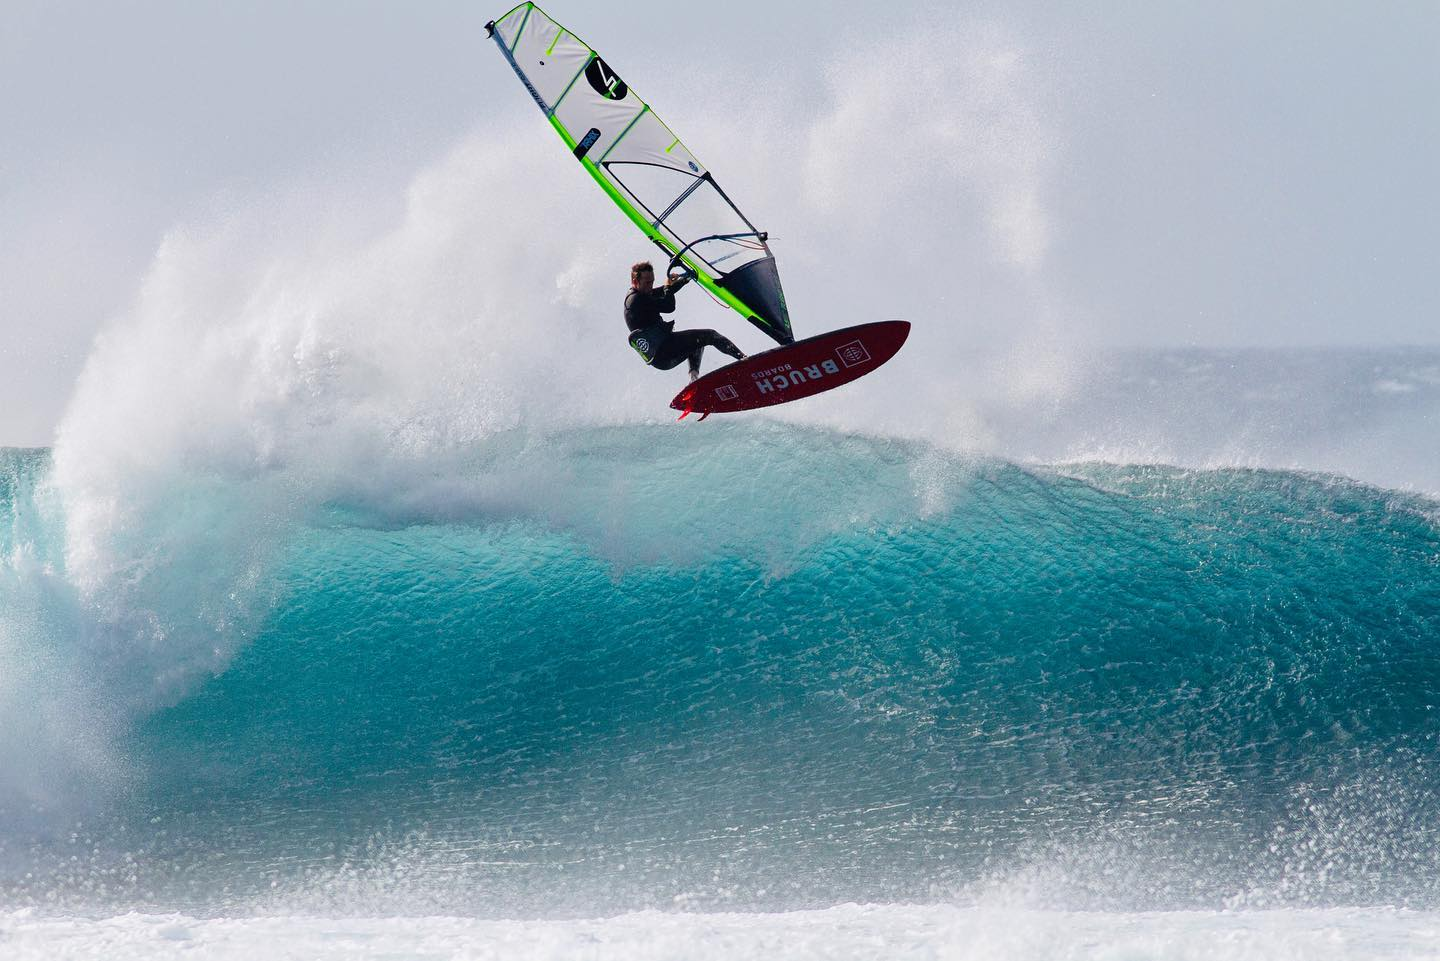 Dany Bruch on Flight Sails in Tenerife